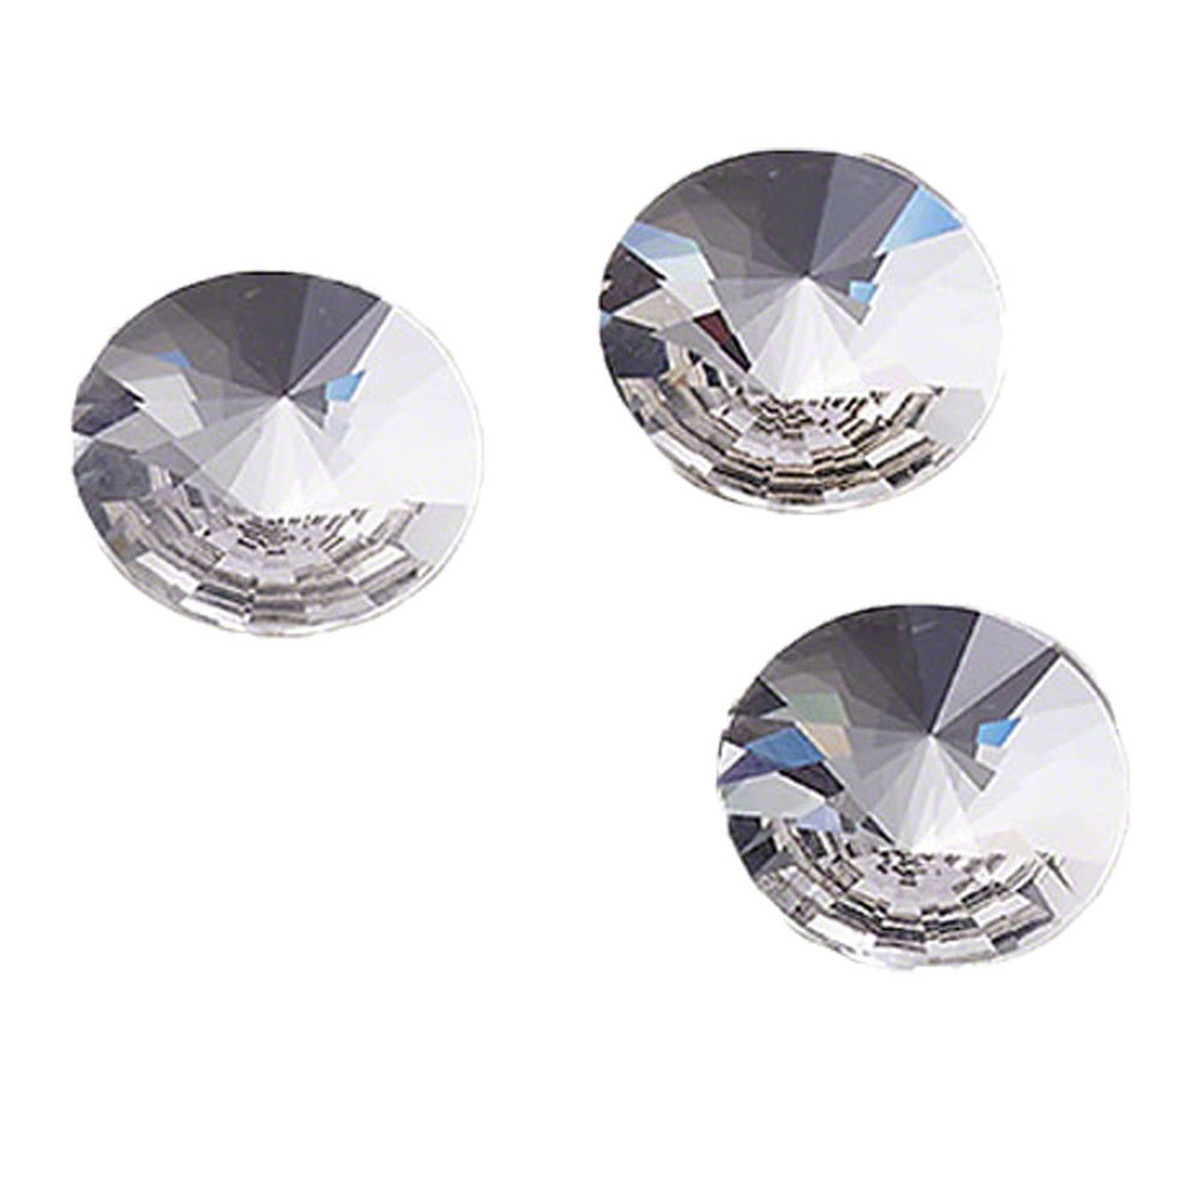 Swarovski Rivoli Jewel Cut Crystal Flat Back